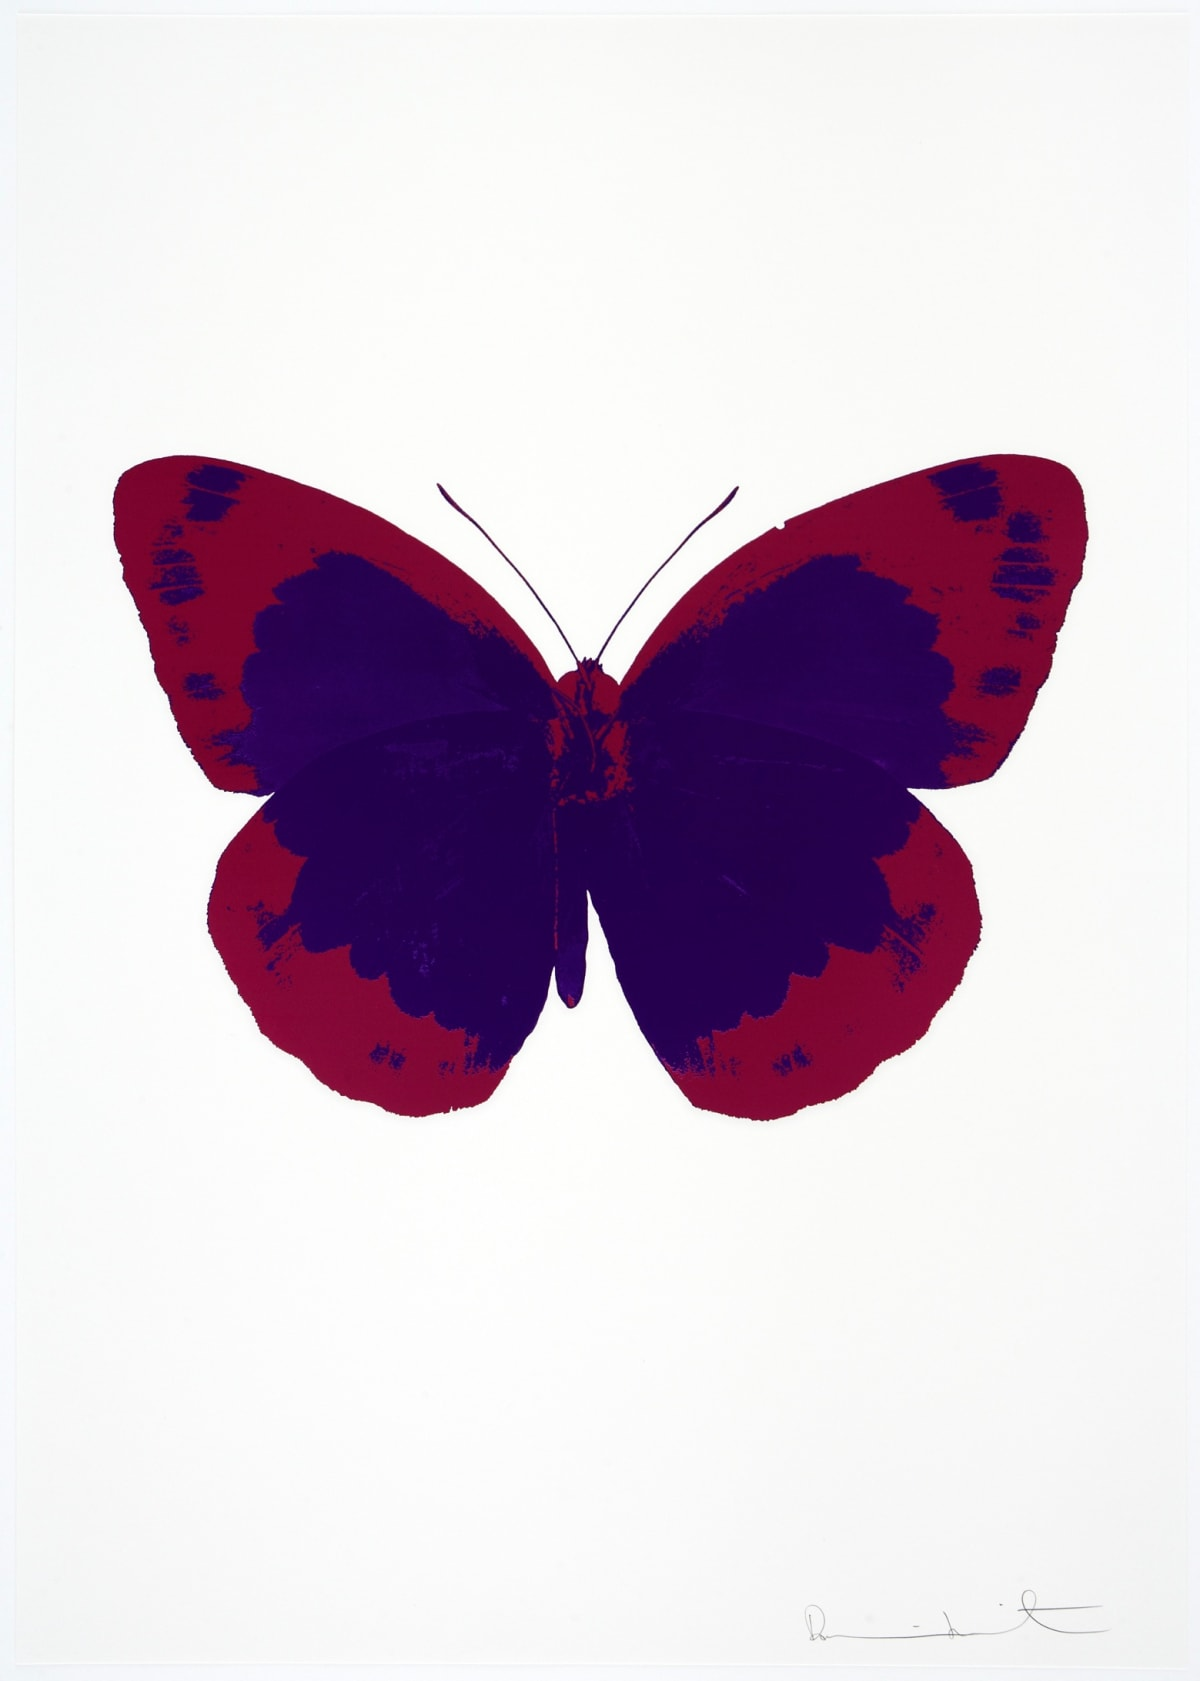 Damien Hirst The Souls II - Imperial Purple/Fuchsia Pink/Blind Impression, 2010 2 colour foil block on 300gsm Arches 88 archival paper. Signed and numbered. Published by Paul Stolper and Other Criteria 72 x 51cm OC7856 / 658-39 Edition of 15